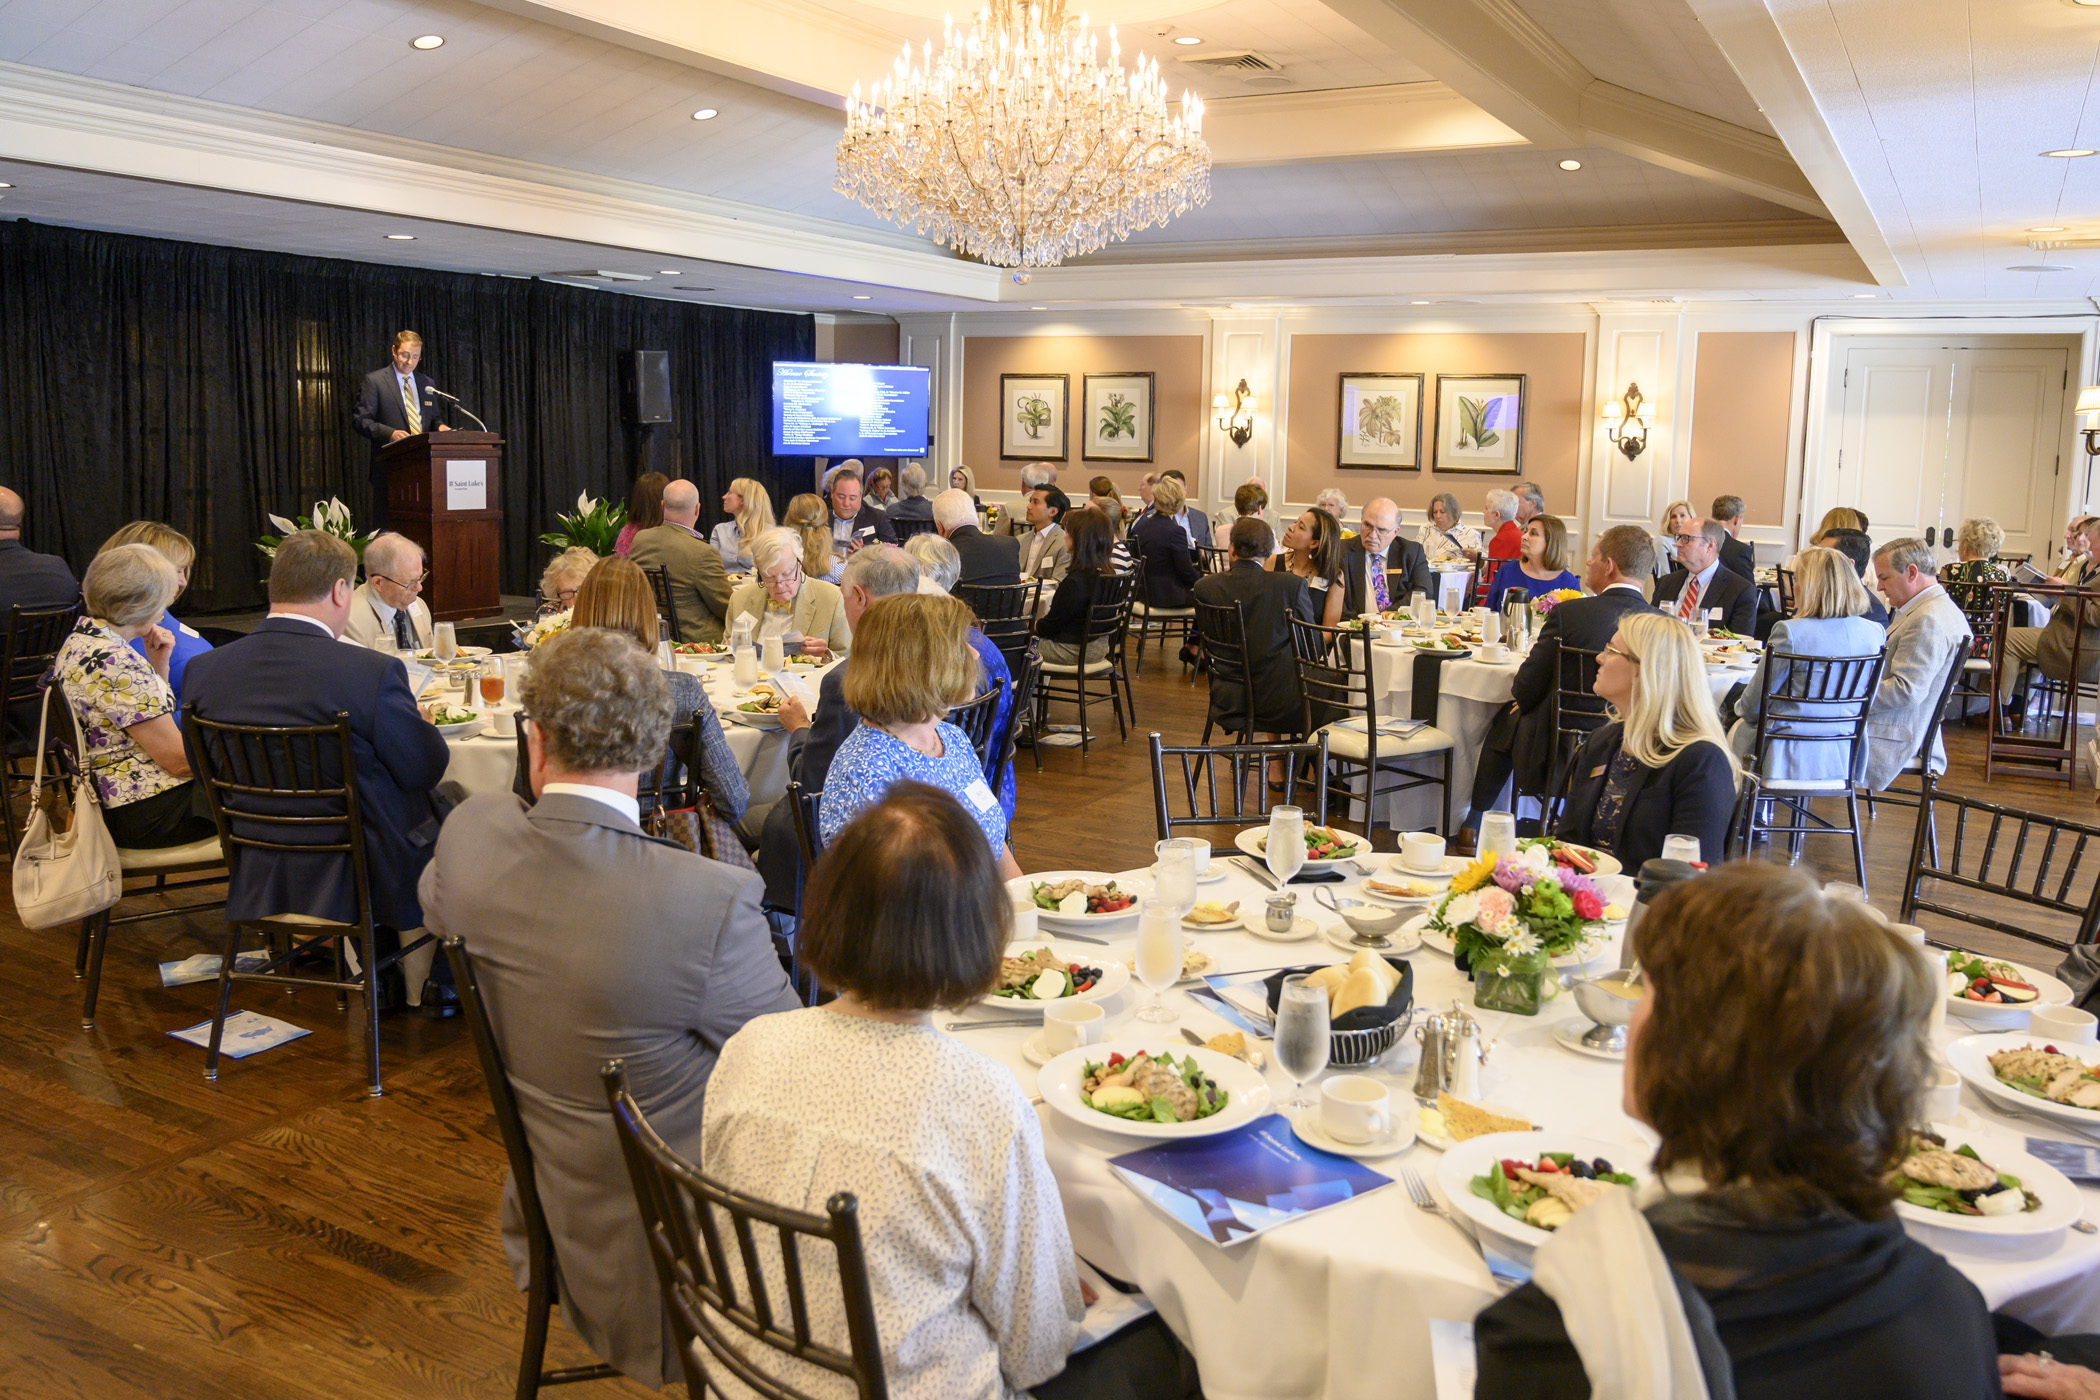 2019 Foundation Fellow Award and Annual Recognition Luncheon